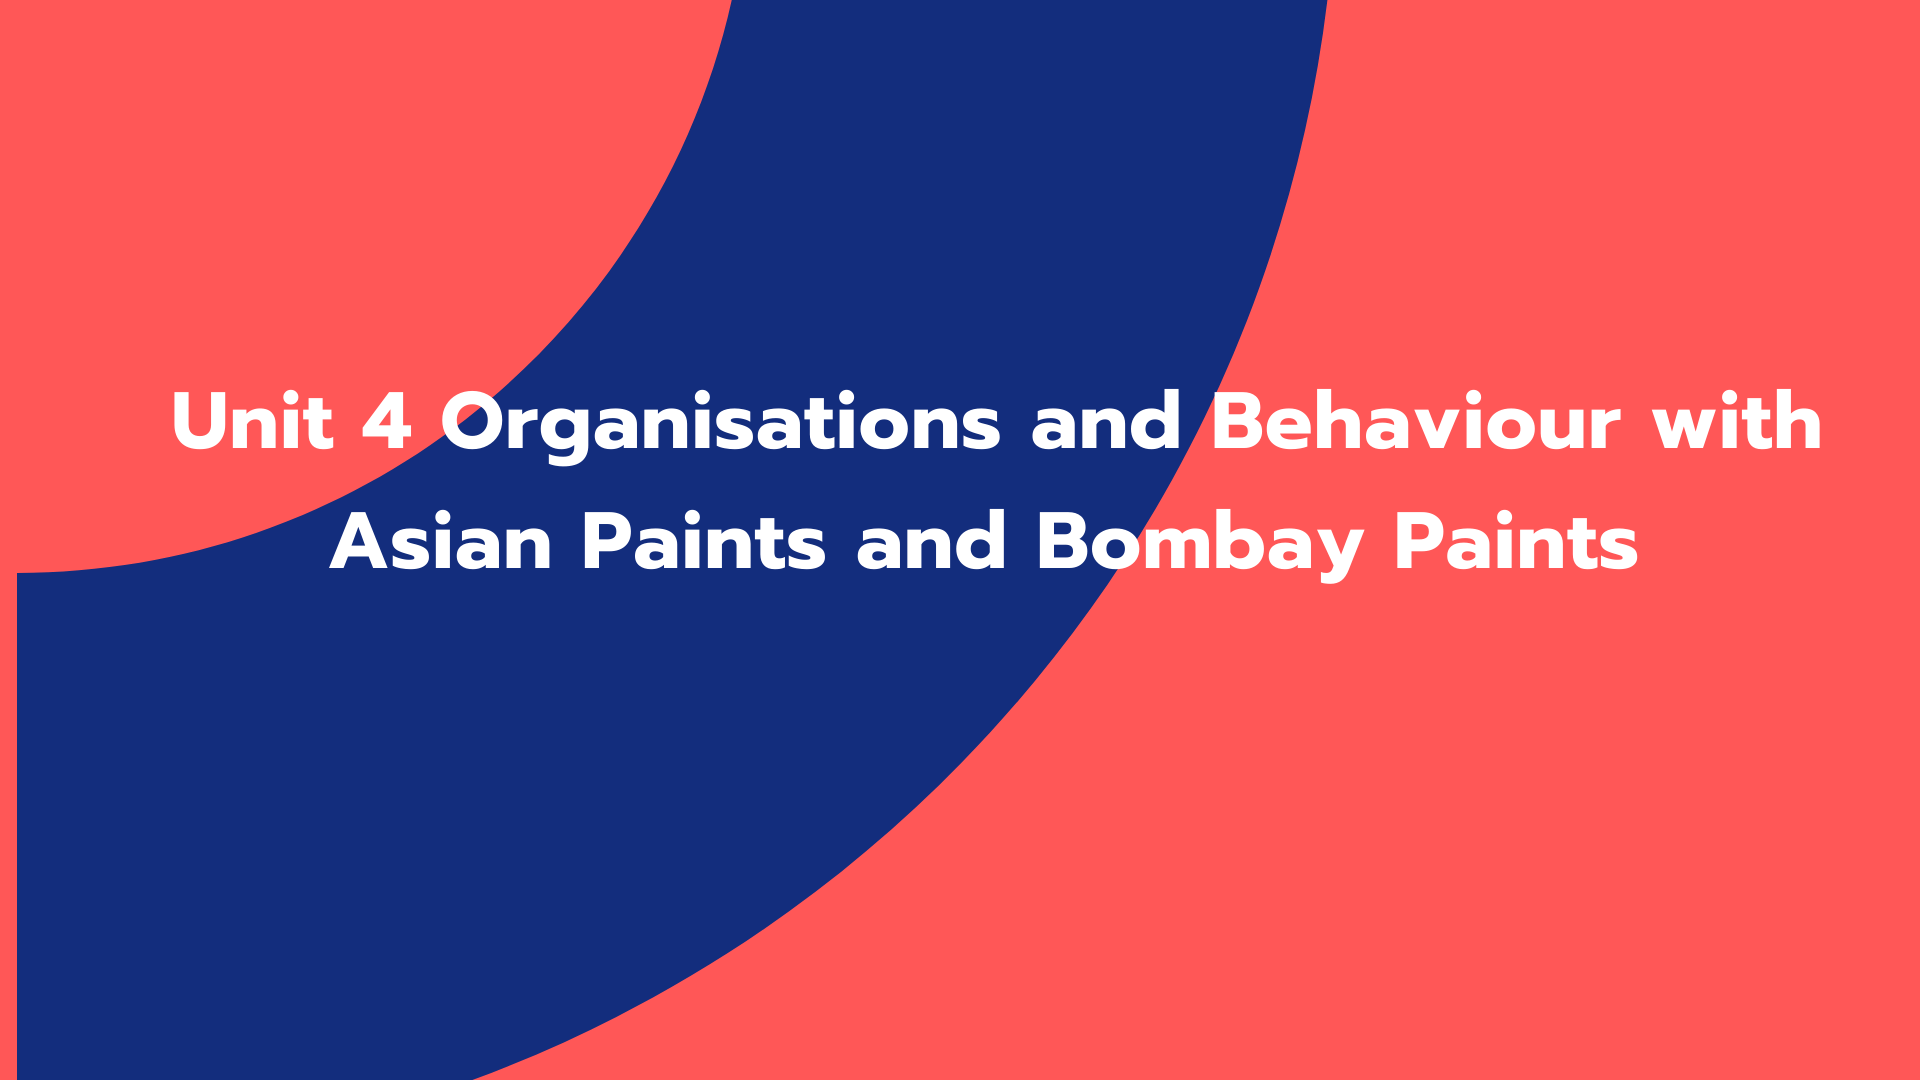 Unit 4 Organisations and Behaviour with Asian Paints and Bombay Paints